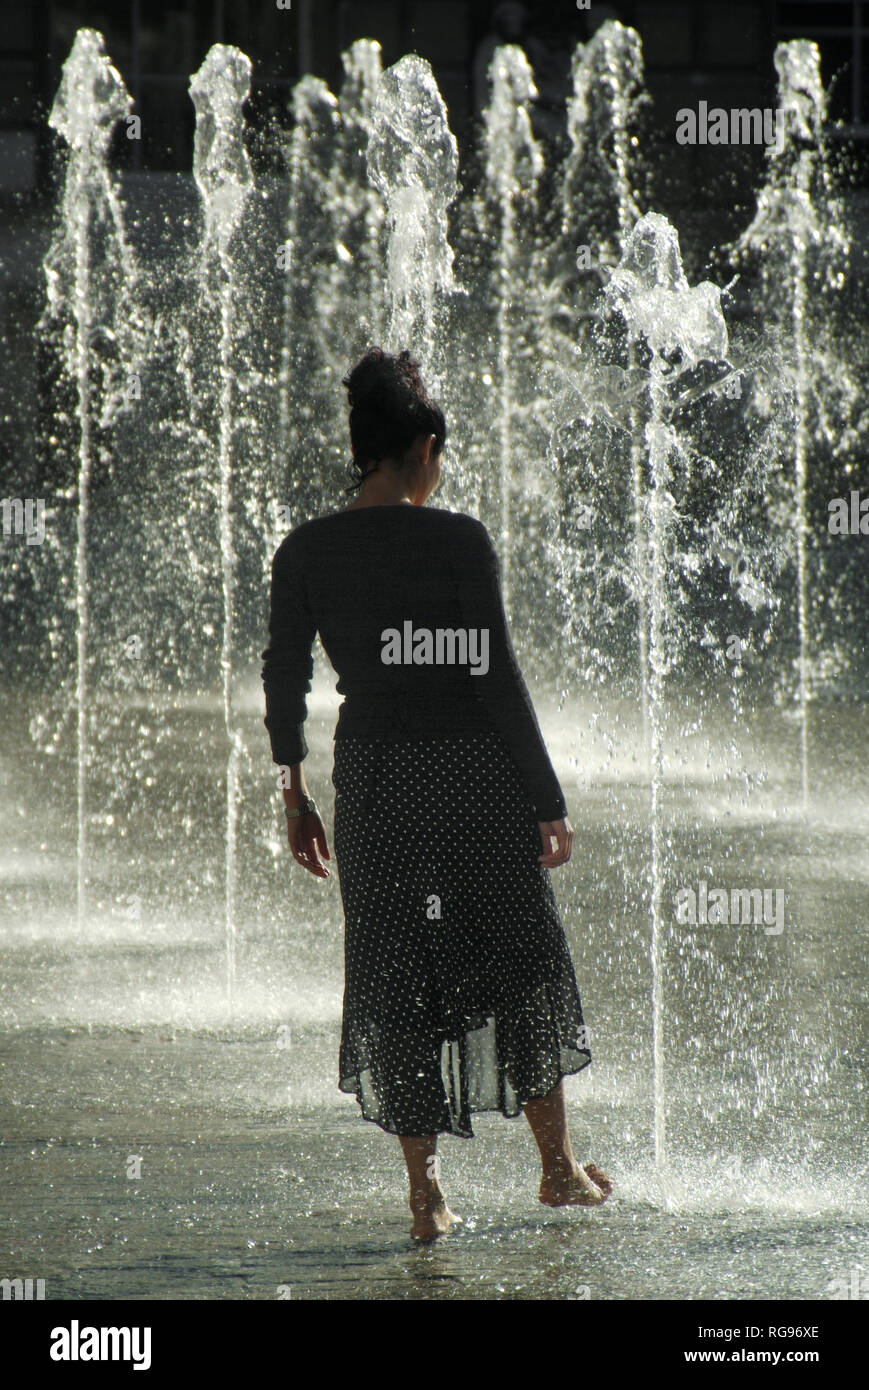 Concept testing & dipping toe in water of feature fountain silhouette back view tall young fun woman cooling off hot summer weather  London England UK - Stock Image